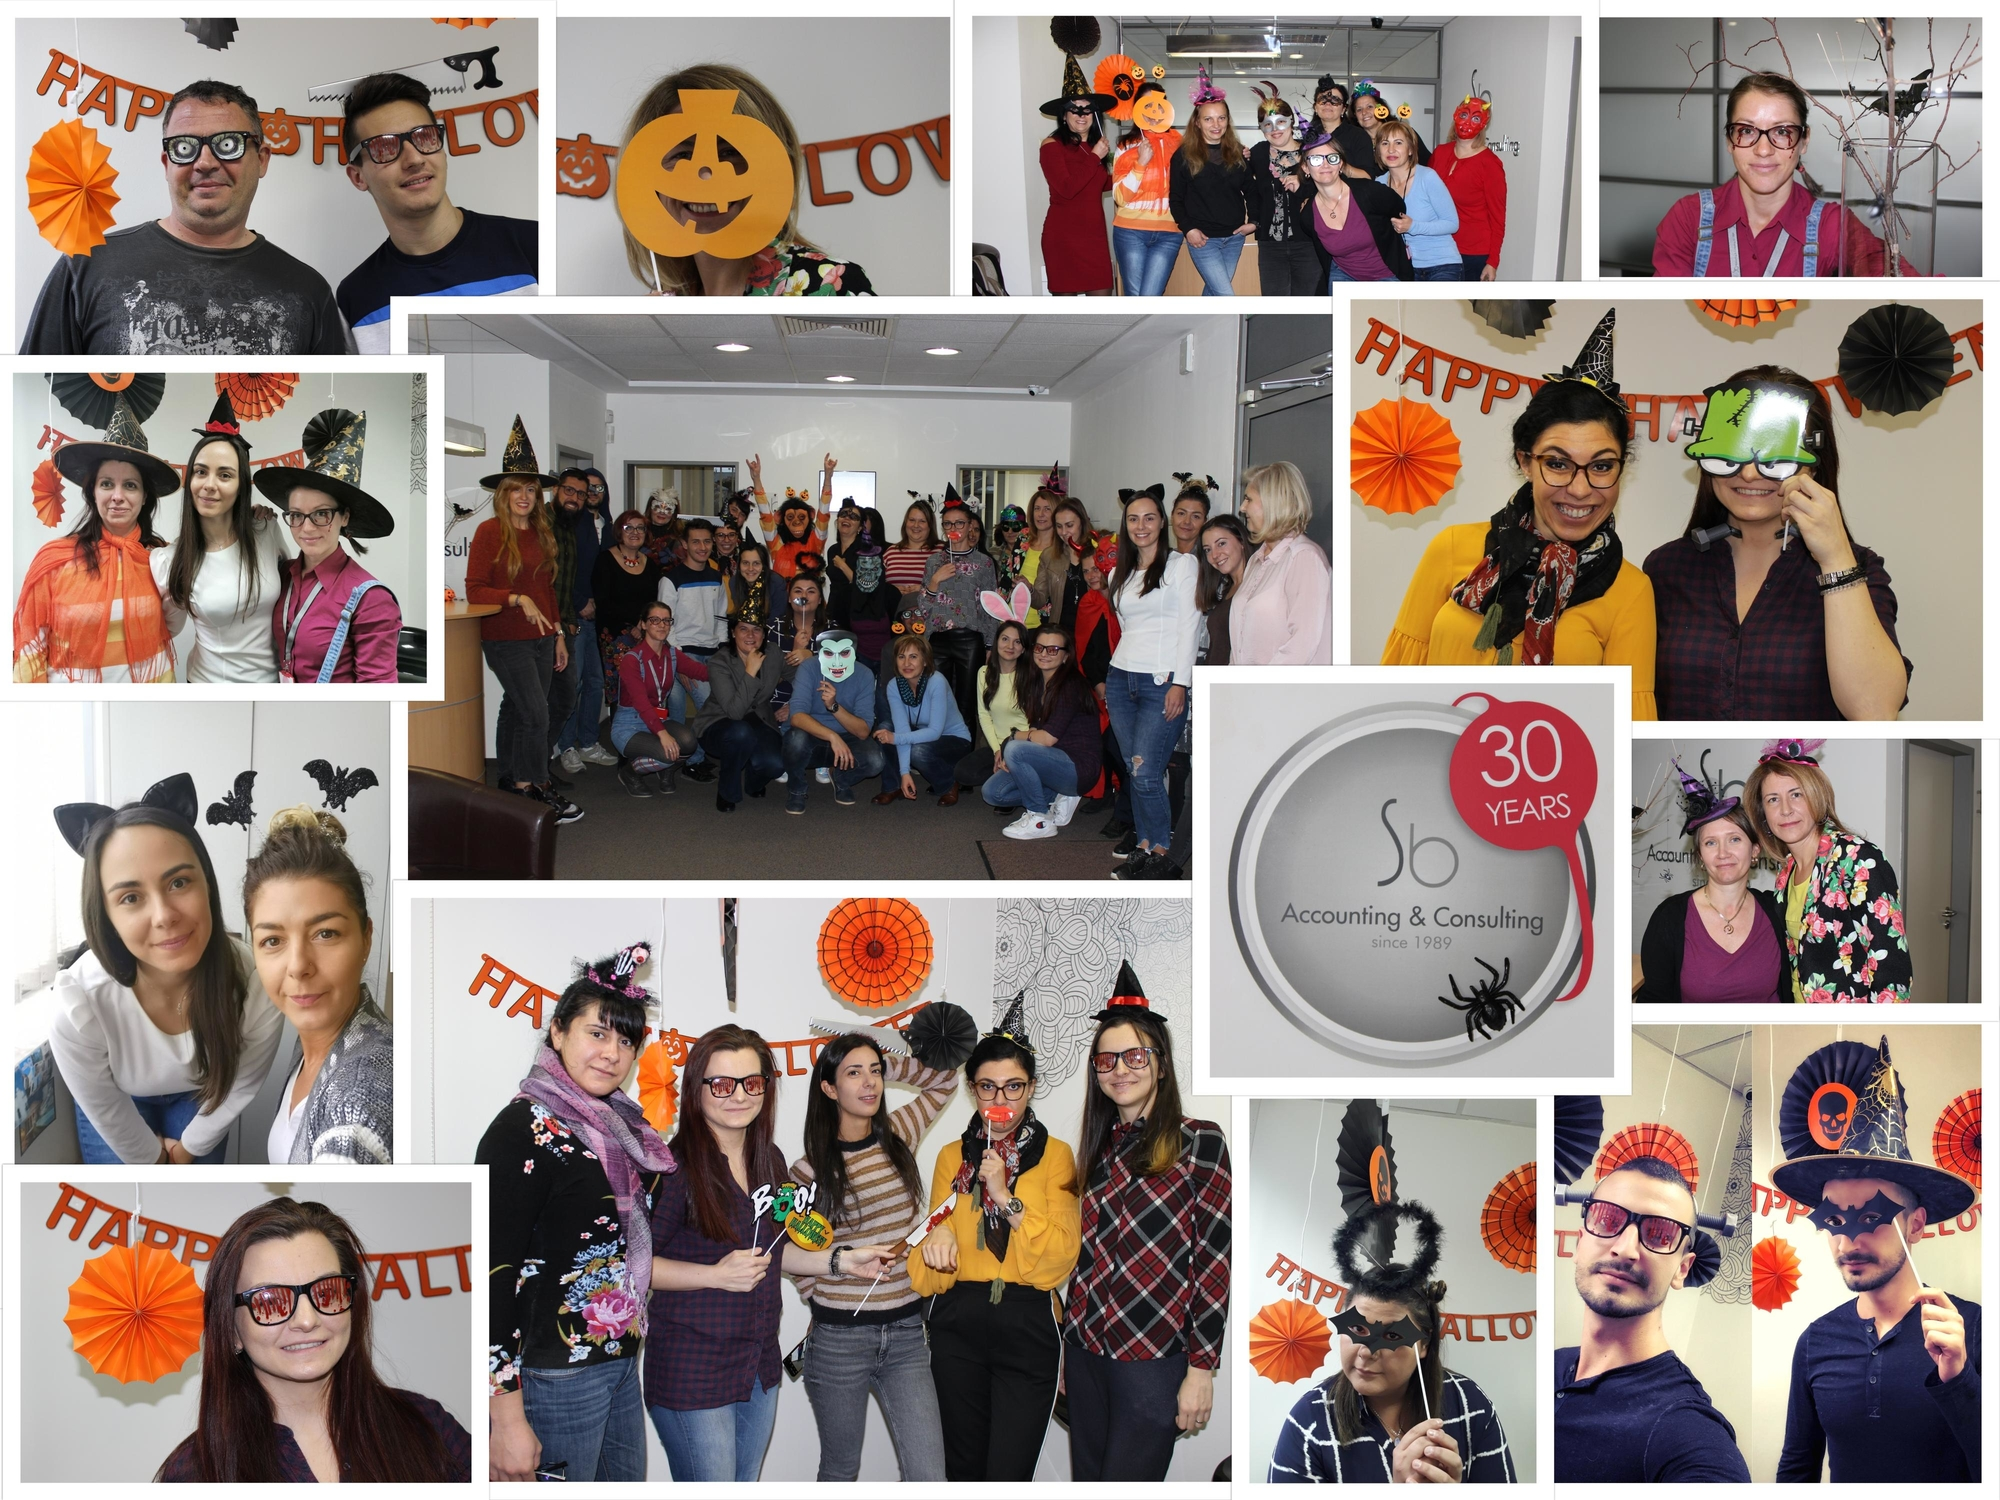 Celebrating Halloween in the Sb office!